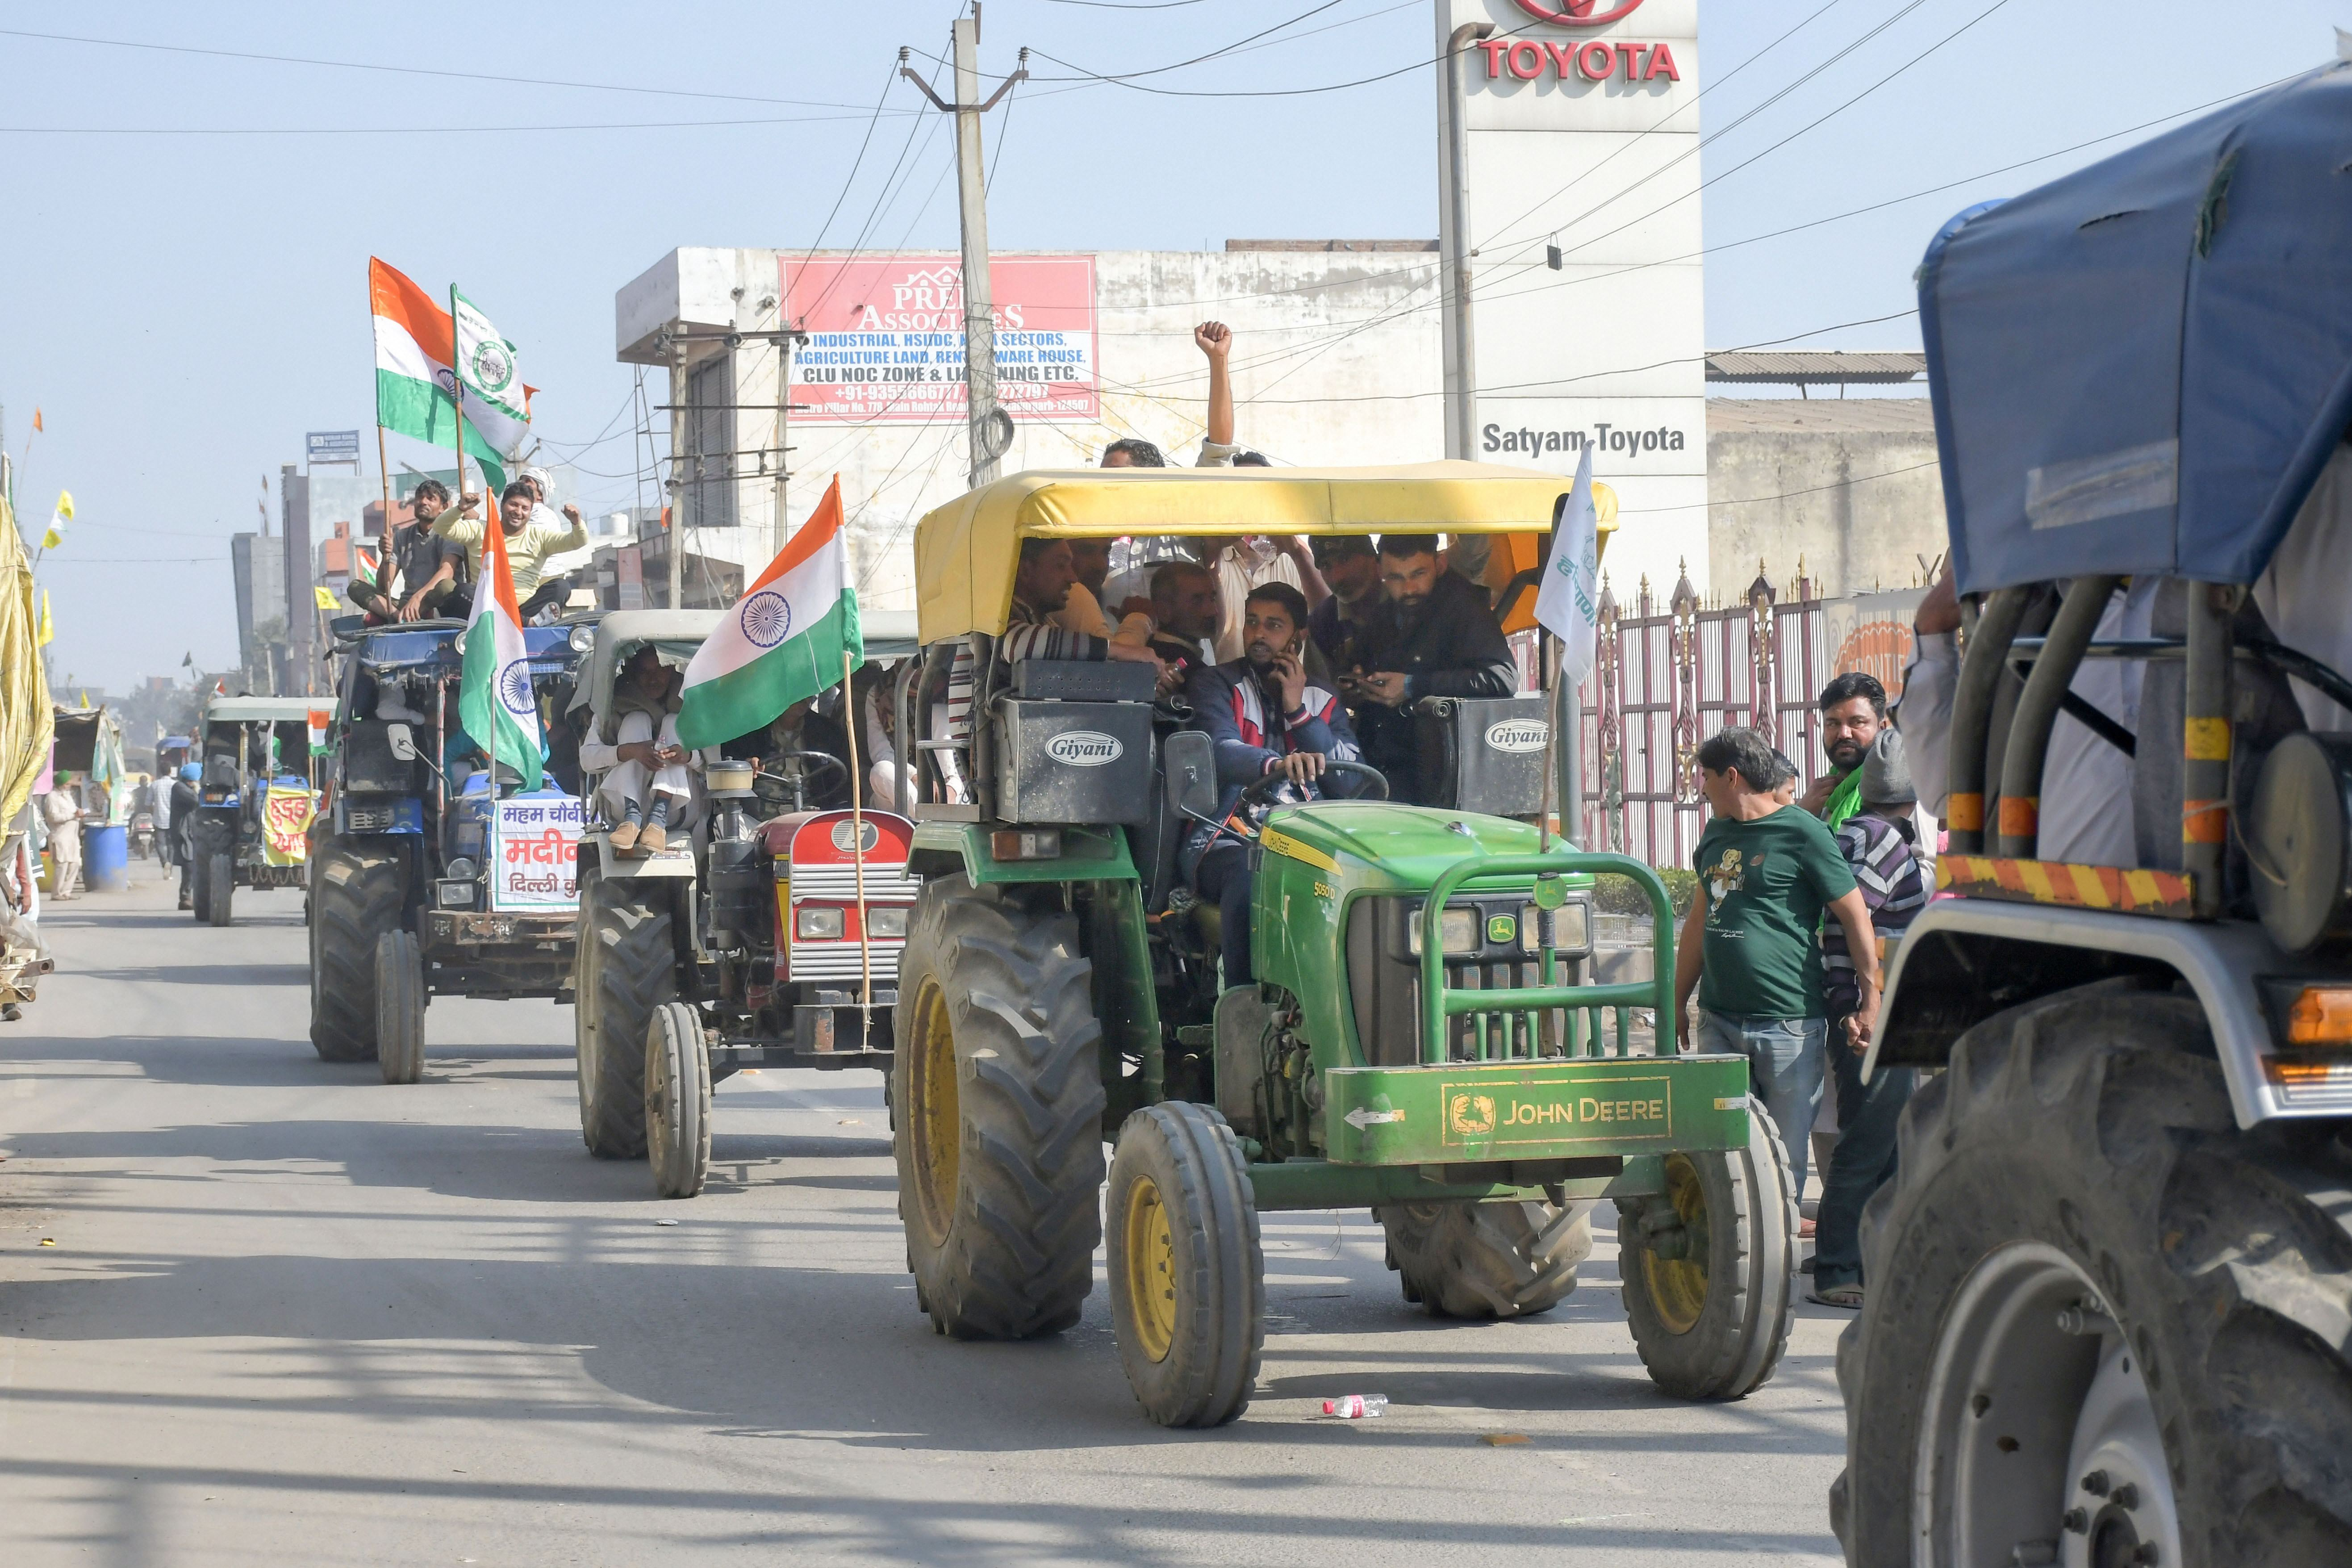 New Delhi: Farmers from different parts of Haryana and Punjab arrive on tractors at Tikri border, to join the ongoing farmers' protest against the Center's new farm laws, in New Delhi,  Sunday, Jan. 31, 2021. (PTI Photo)(PTI01_31_2021_000116B)